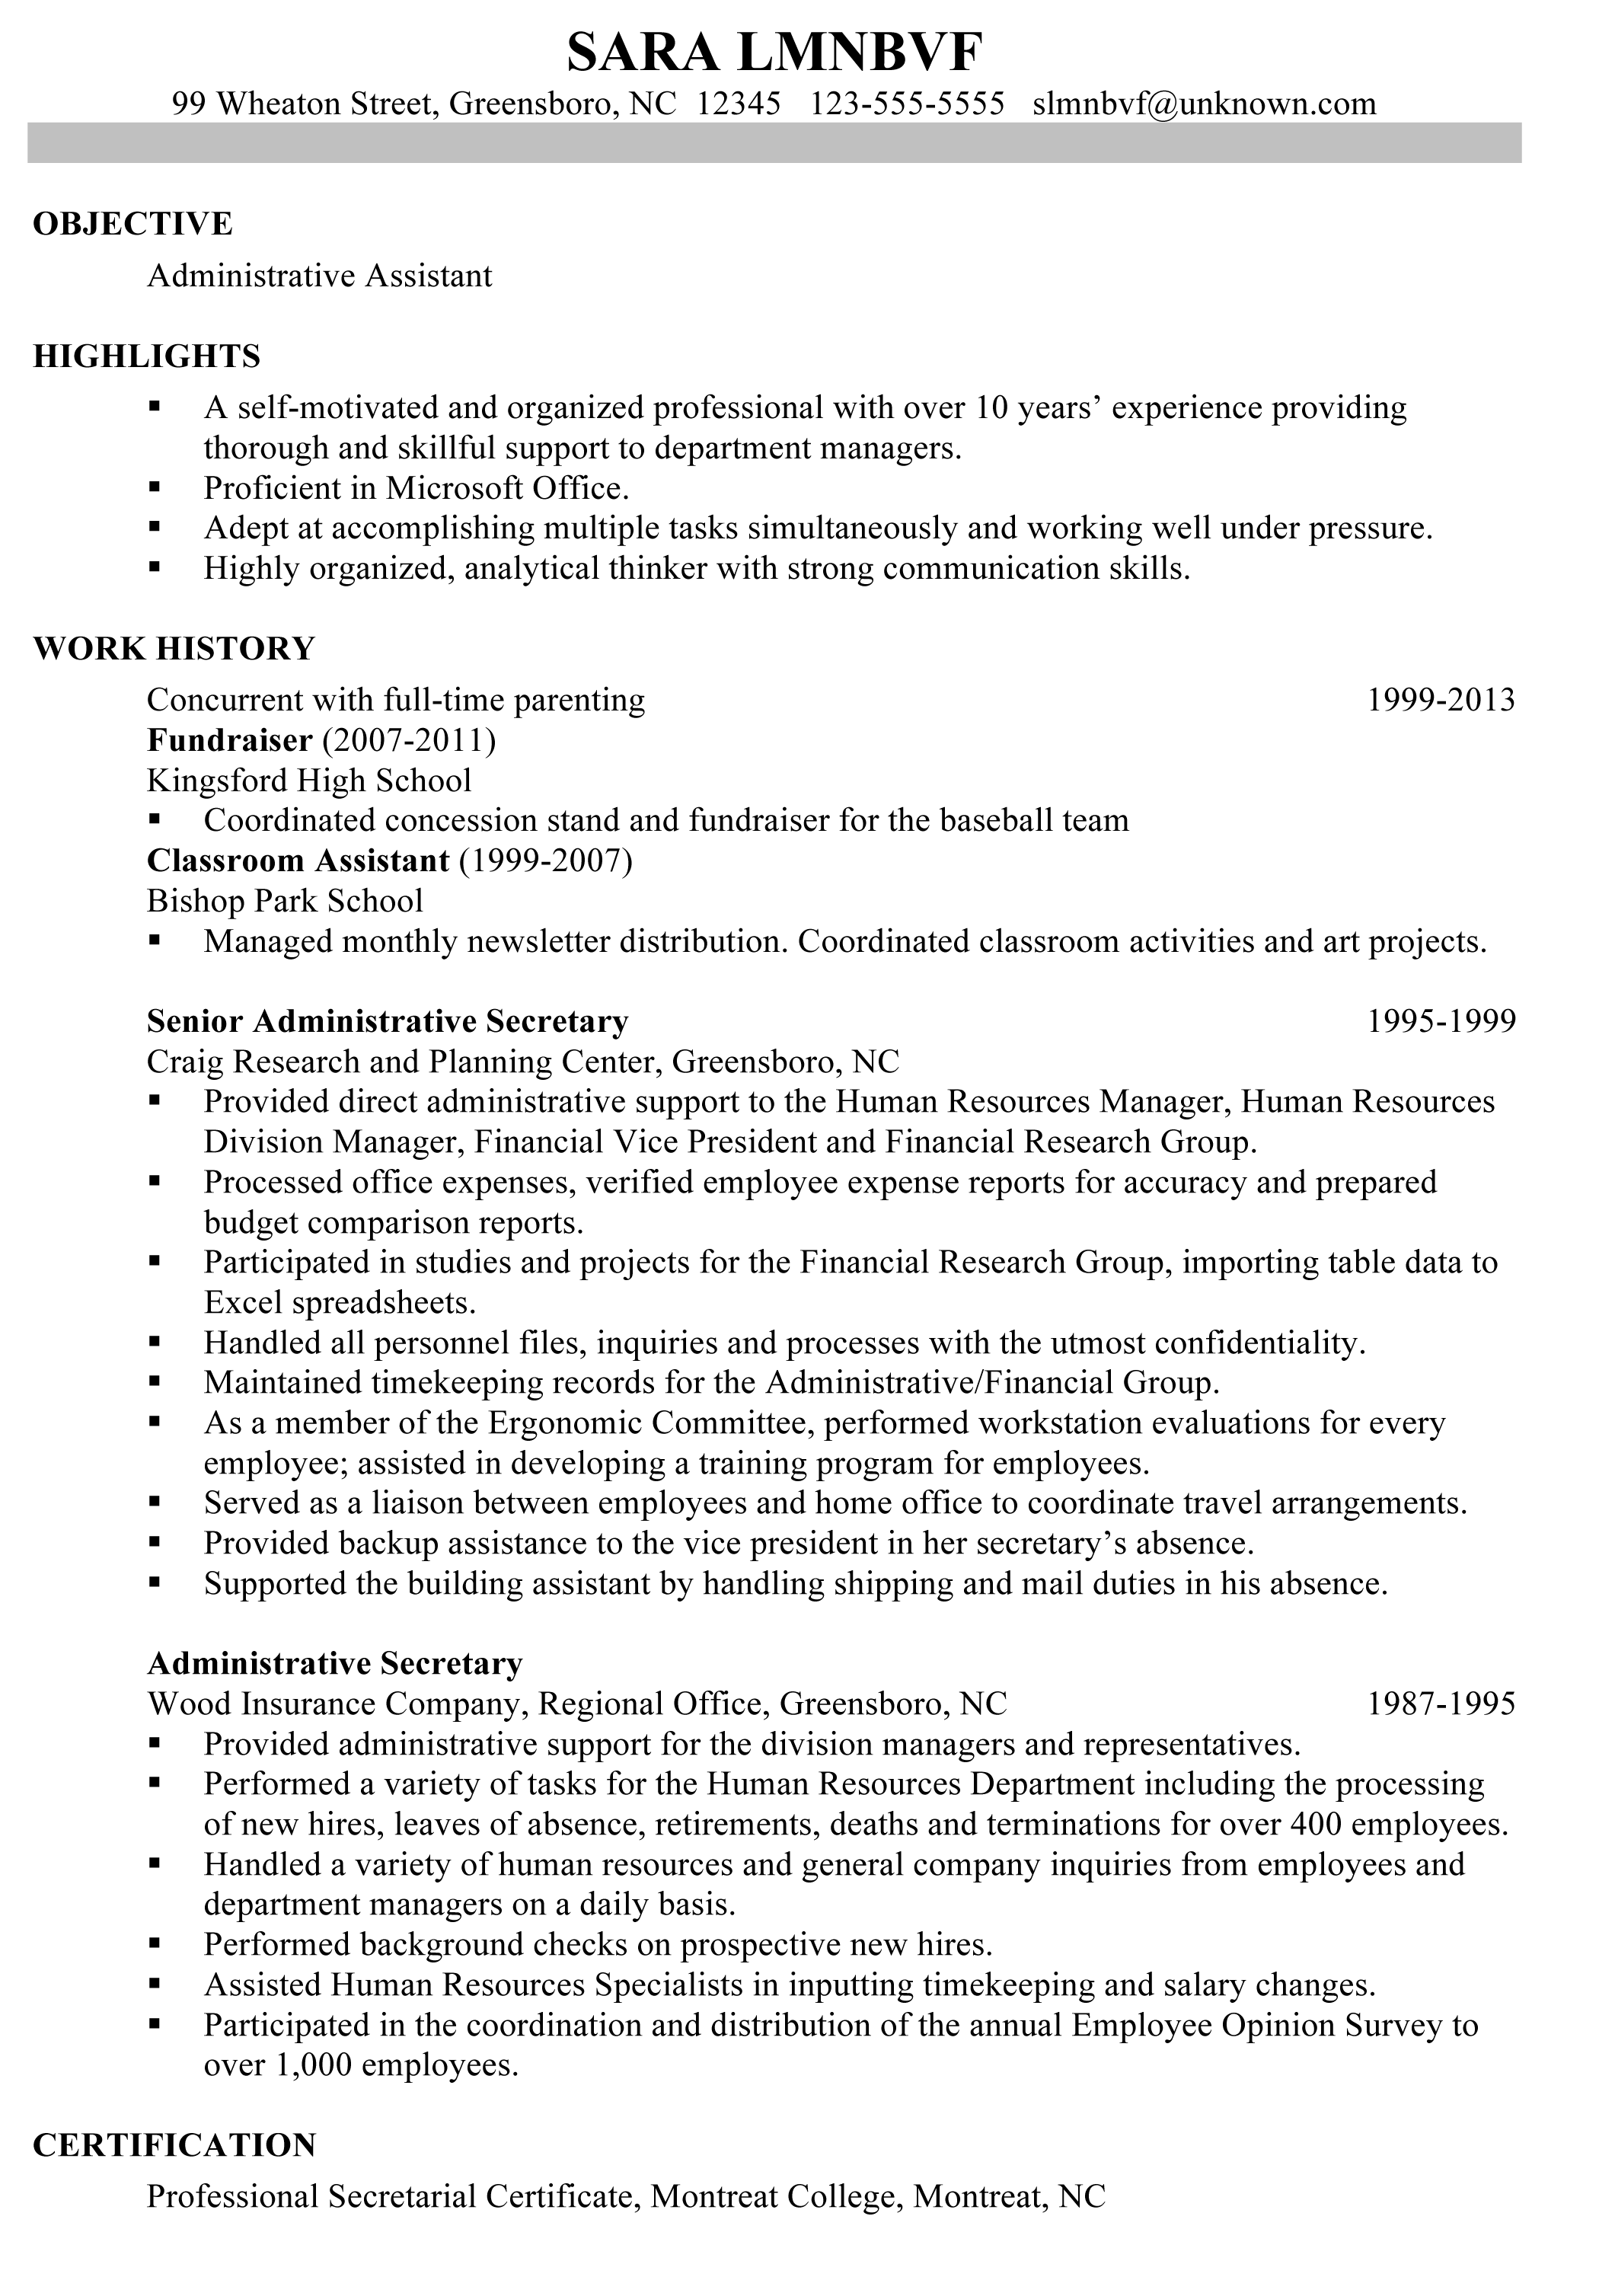 Administrative Assistant Resume Samples Chronological Resume Sample Administrative Assistant  Resume